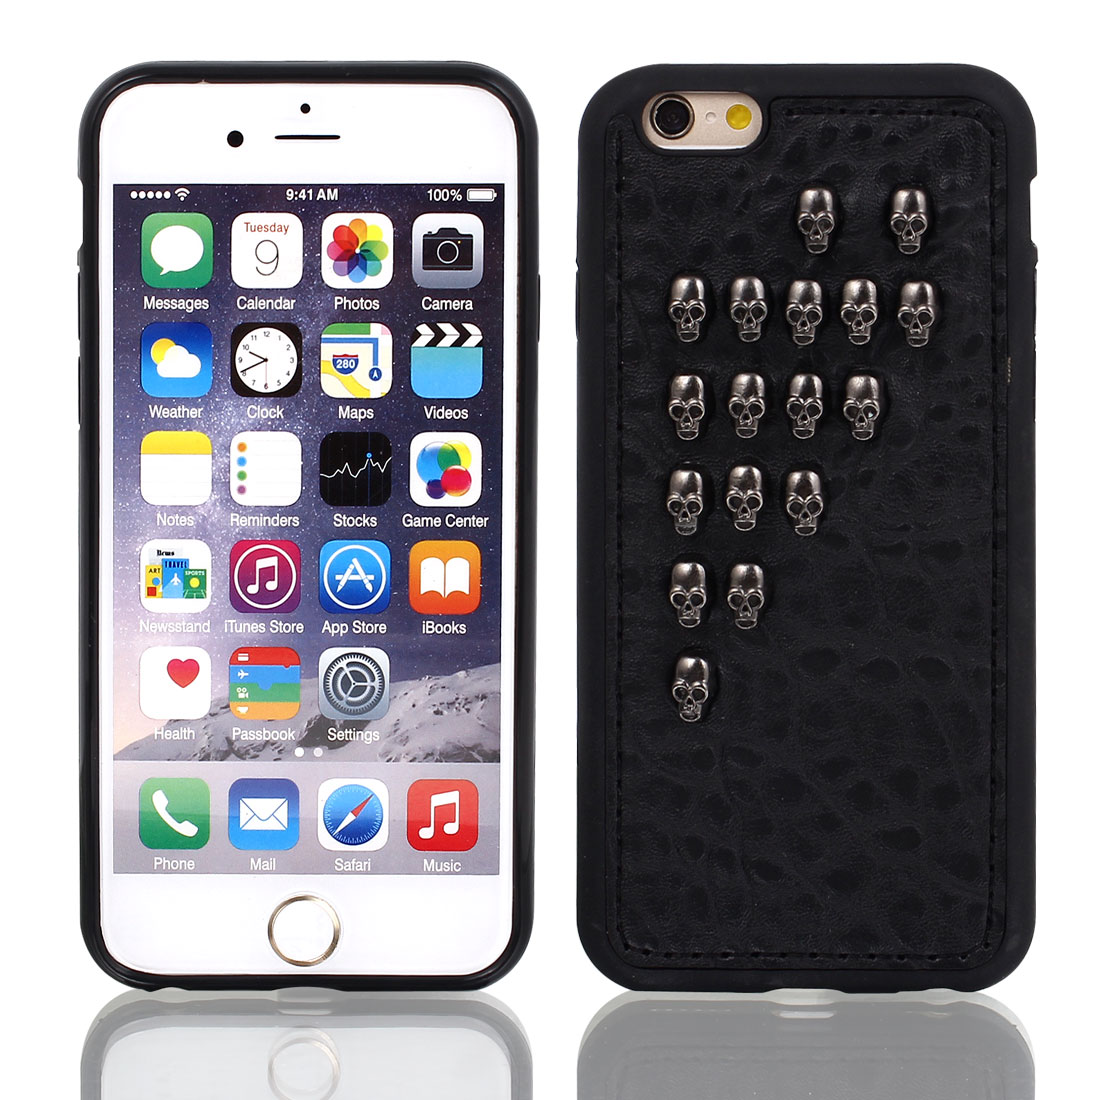 Faux Leather Protector Shell Skin Case Cover Black for Apple iPhone 6 4.7""